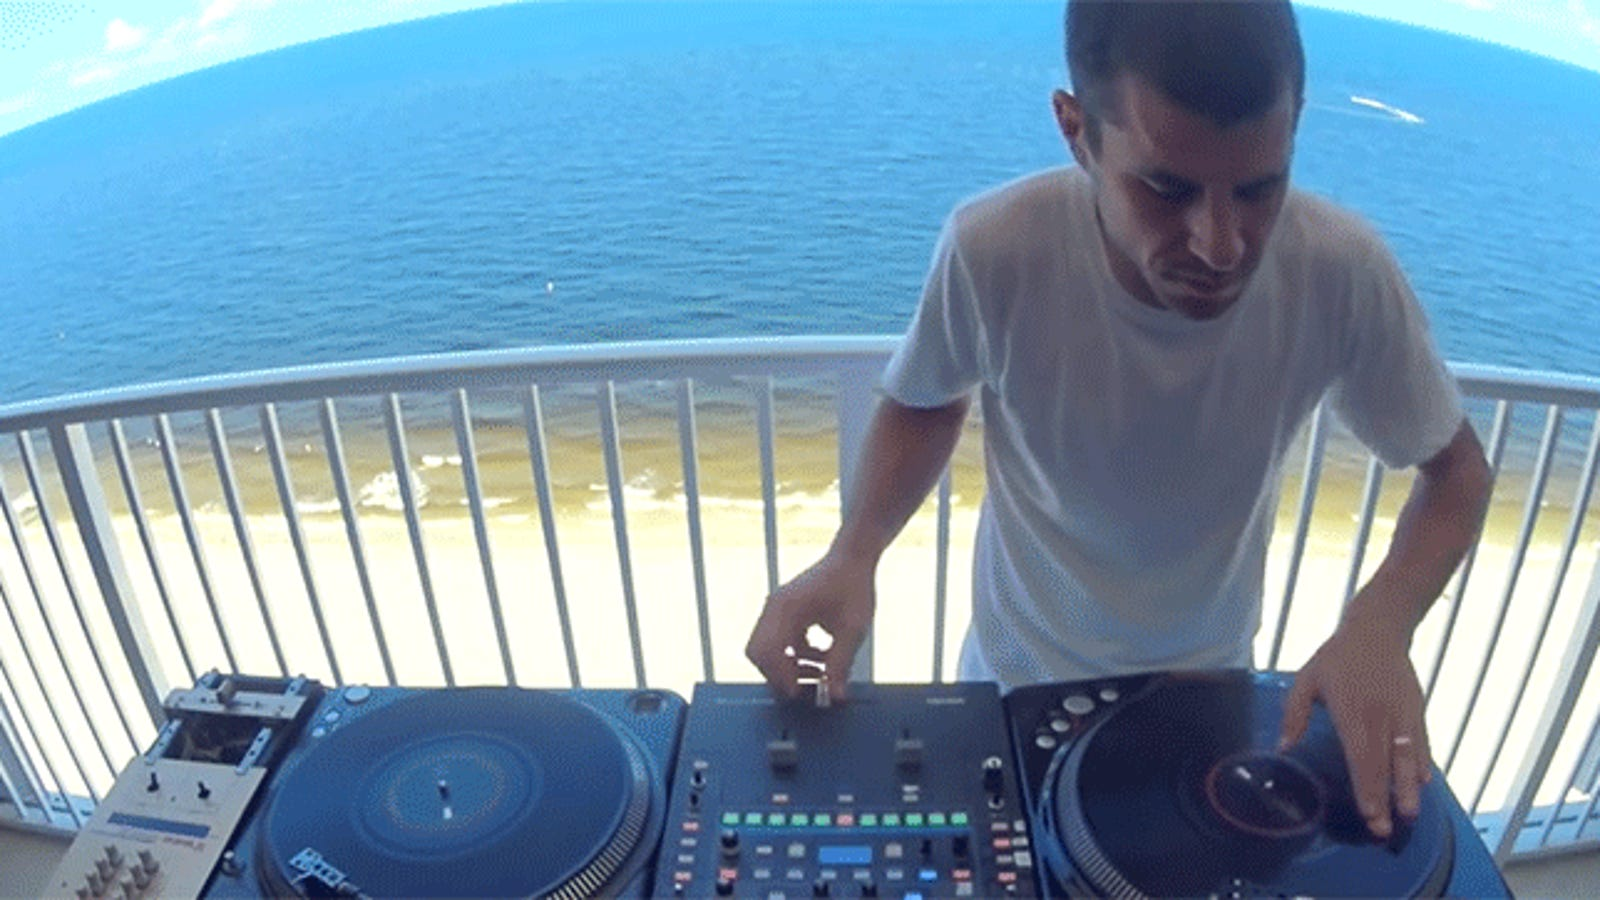 Chill DJ Will Blow Your Mind With Turntable Wizardry